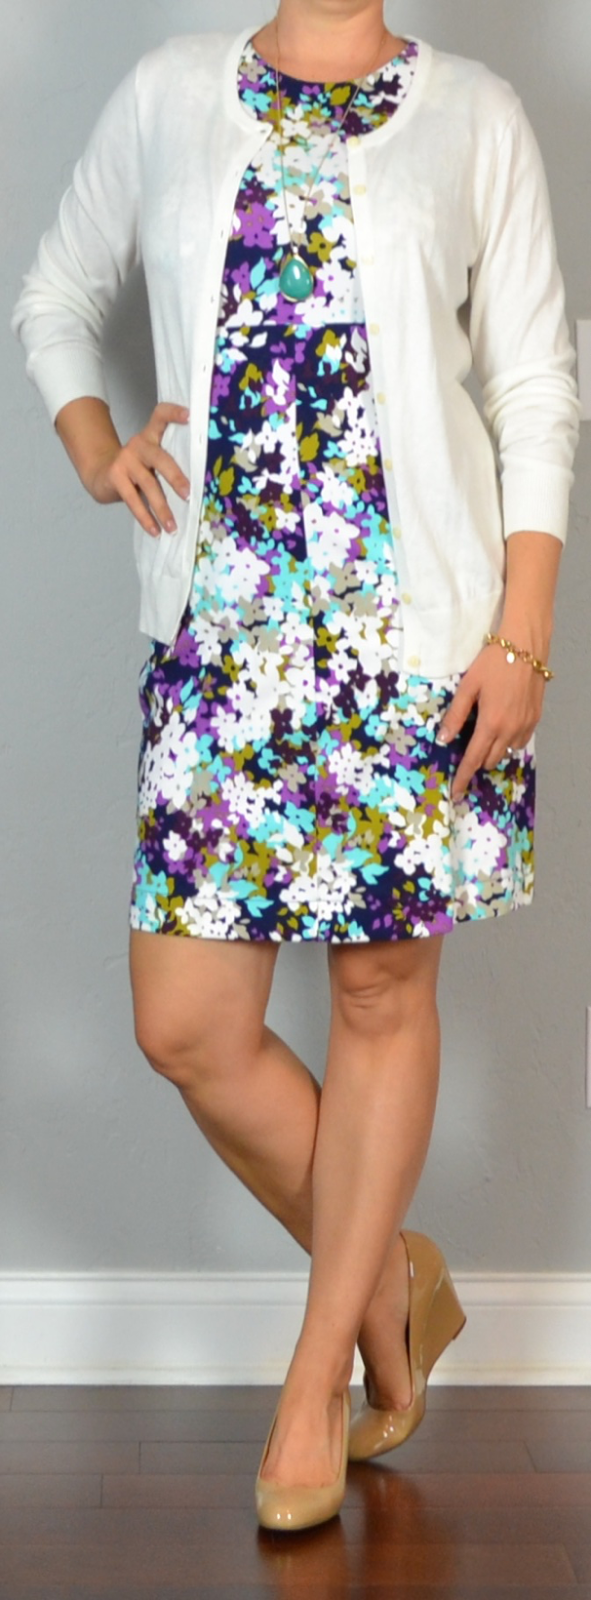 outfit post: purple sleeveless floral ponte dress, green